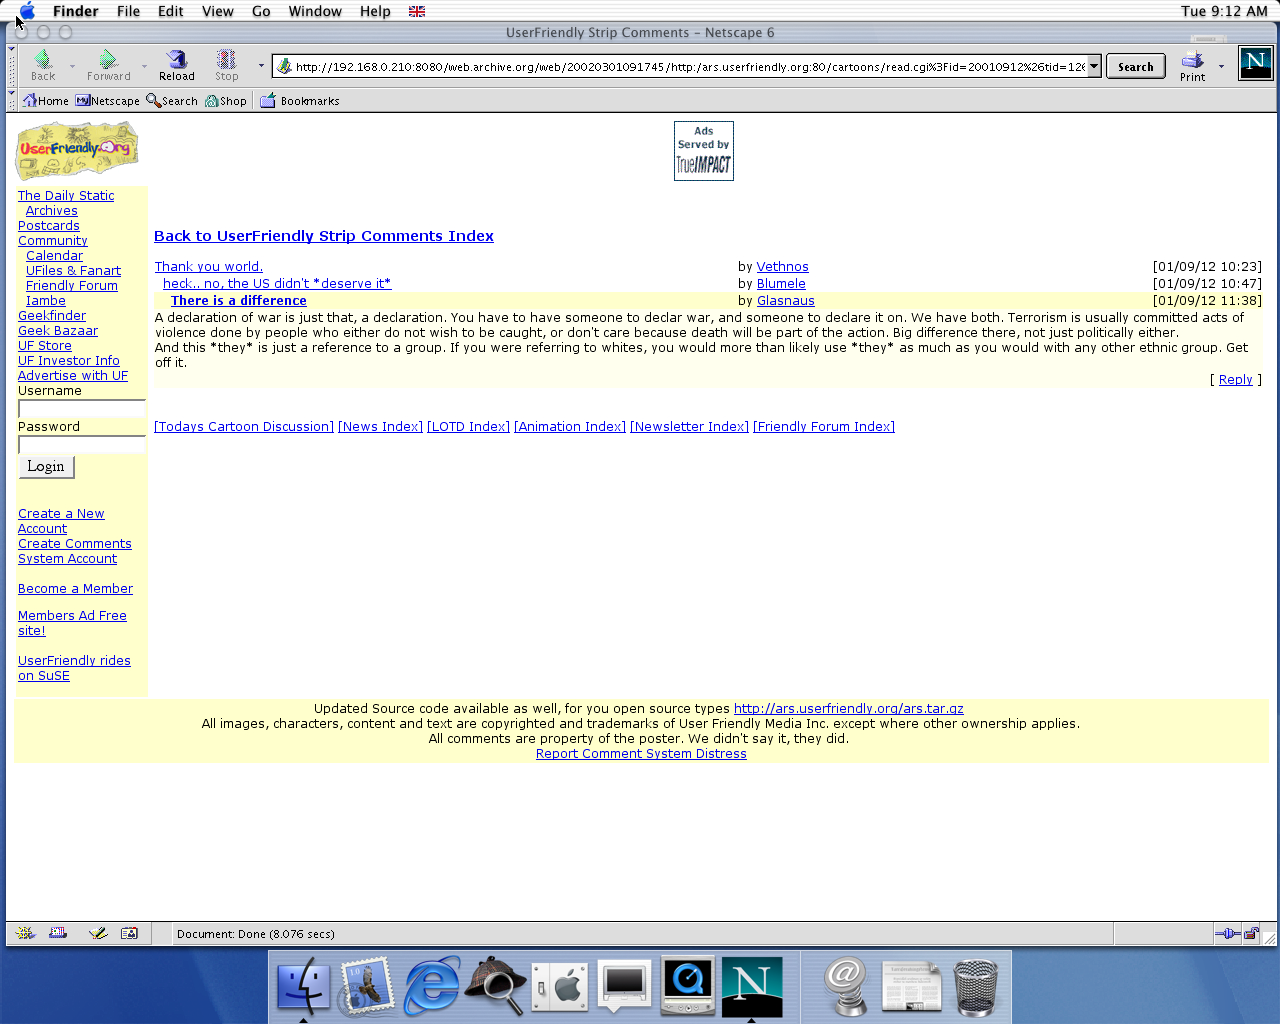 OS X 10.0 PPC with Netscape 6.1 displaying a page from User Friendly archived at March 01, 2002 at 09:17:45